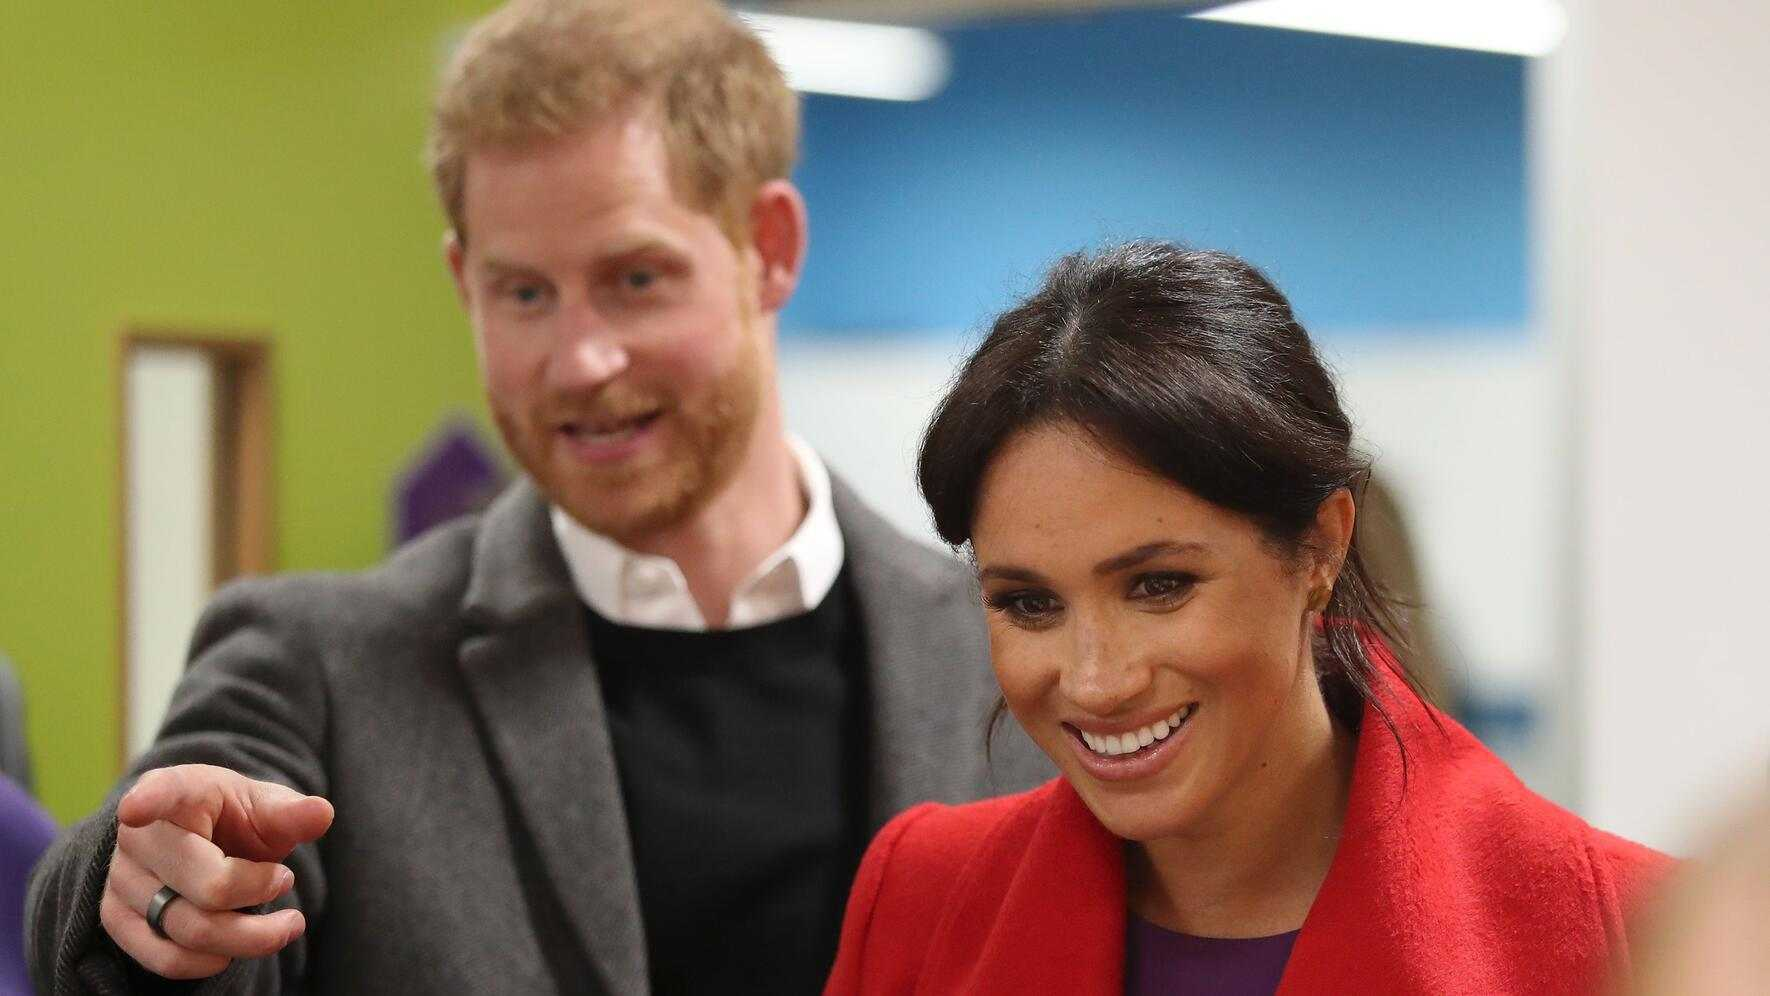 Prince Harry and Meghan Markle visit the Hive, Wirral Youth Zone in Birkenhead, Merseyside, UK, on the 14th January 2019.Picture by Danny Lawson/WPA-Pool//GEORGEROGERS_13.040/Credit:GEORGE ROGERS/SIPA/1901171529 (FOTO: DUKAS/SIPA) *** Local Caption *** 00891245